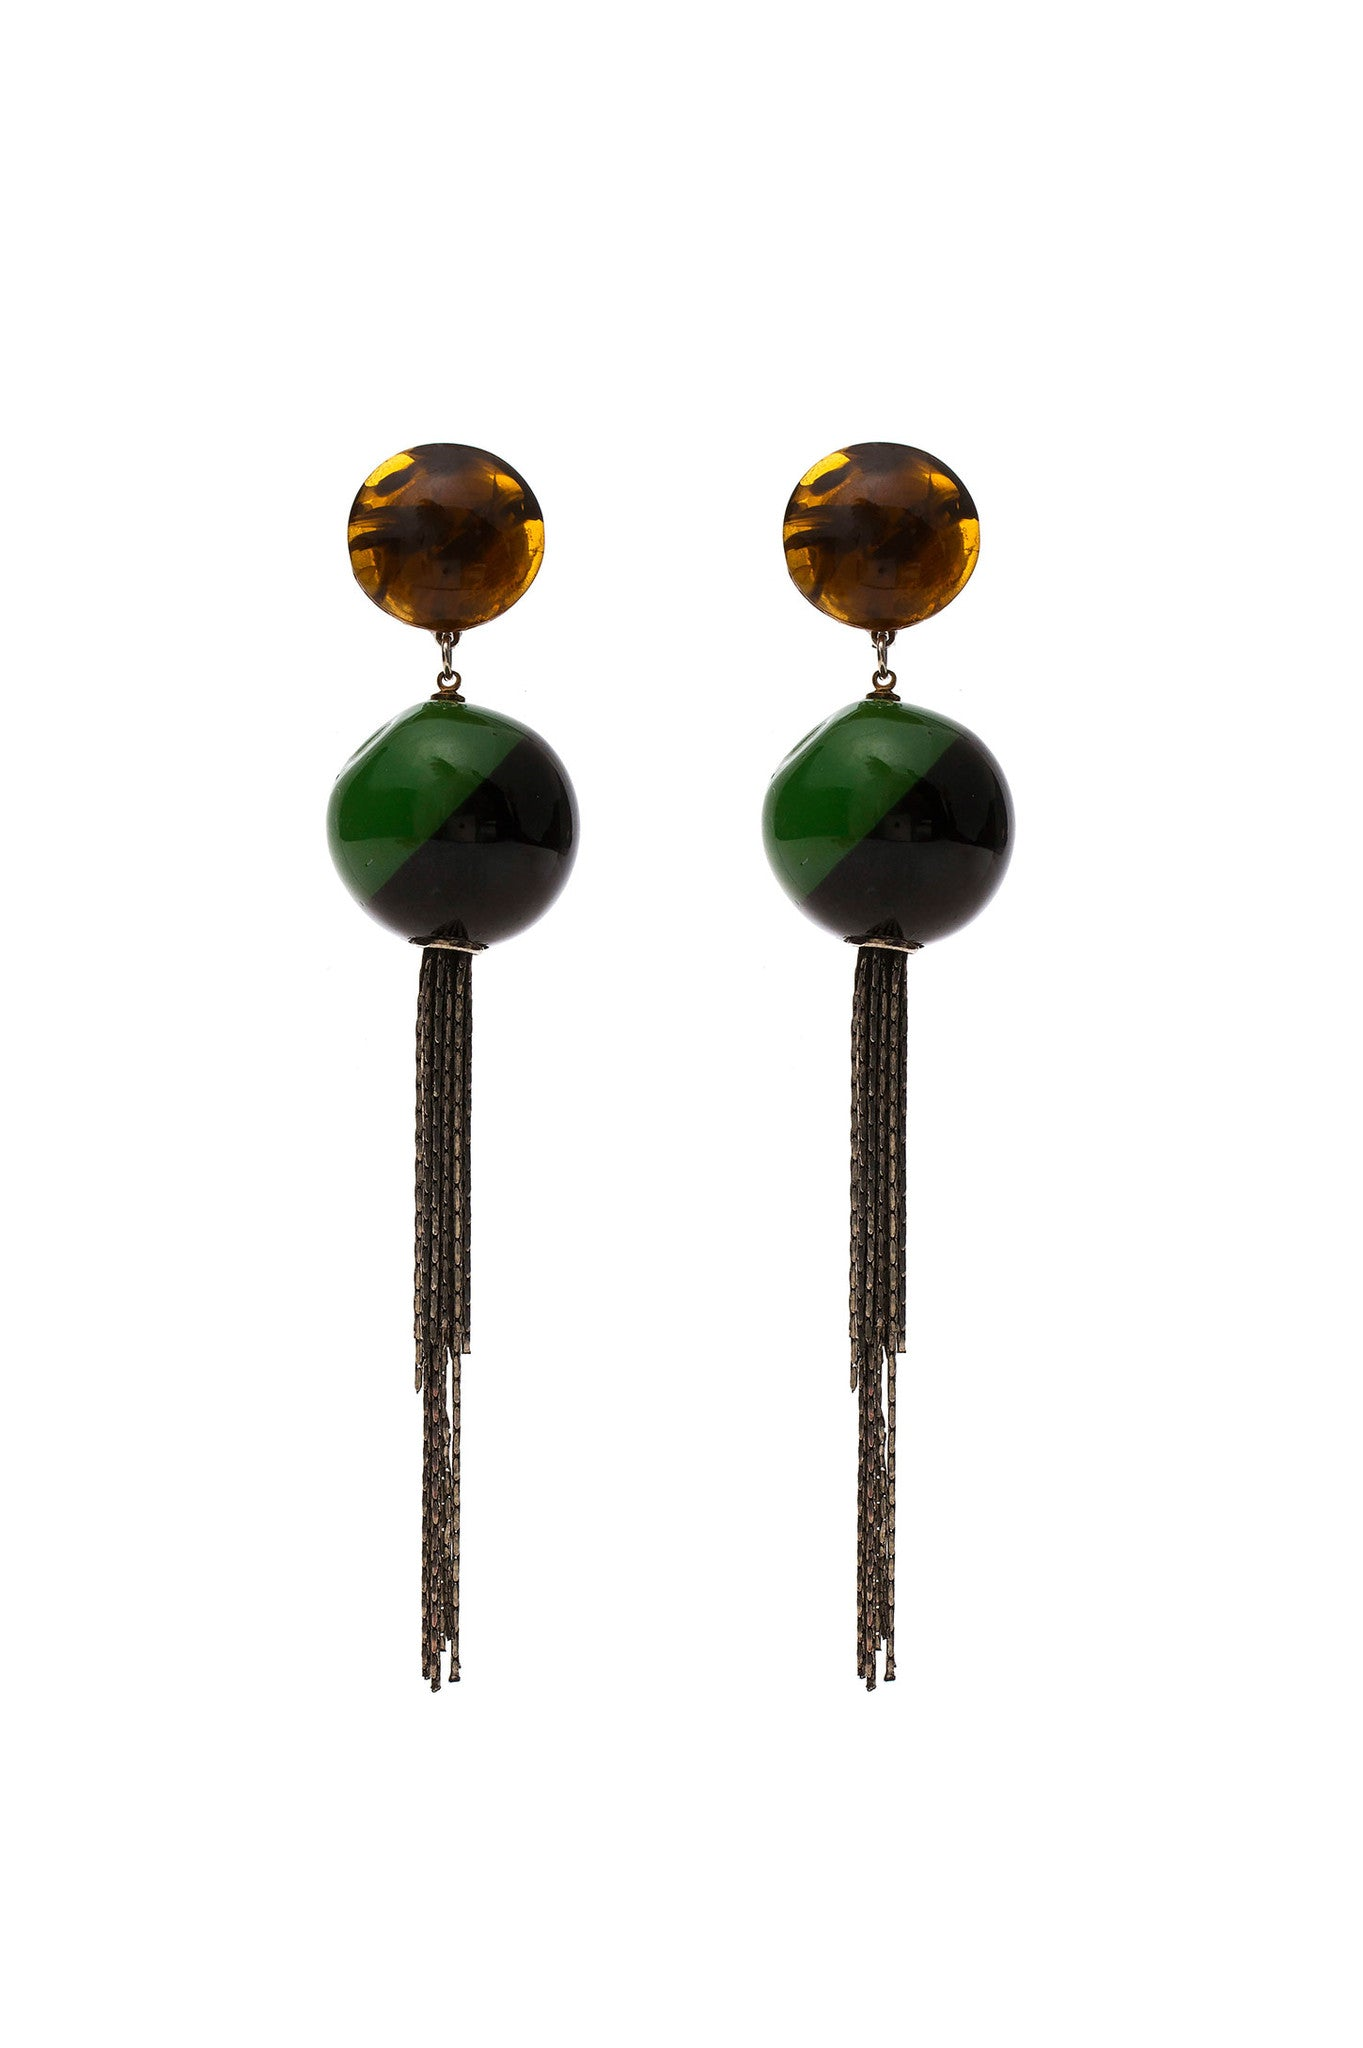 Black and Green Bicolor Earrings